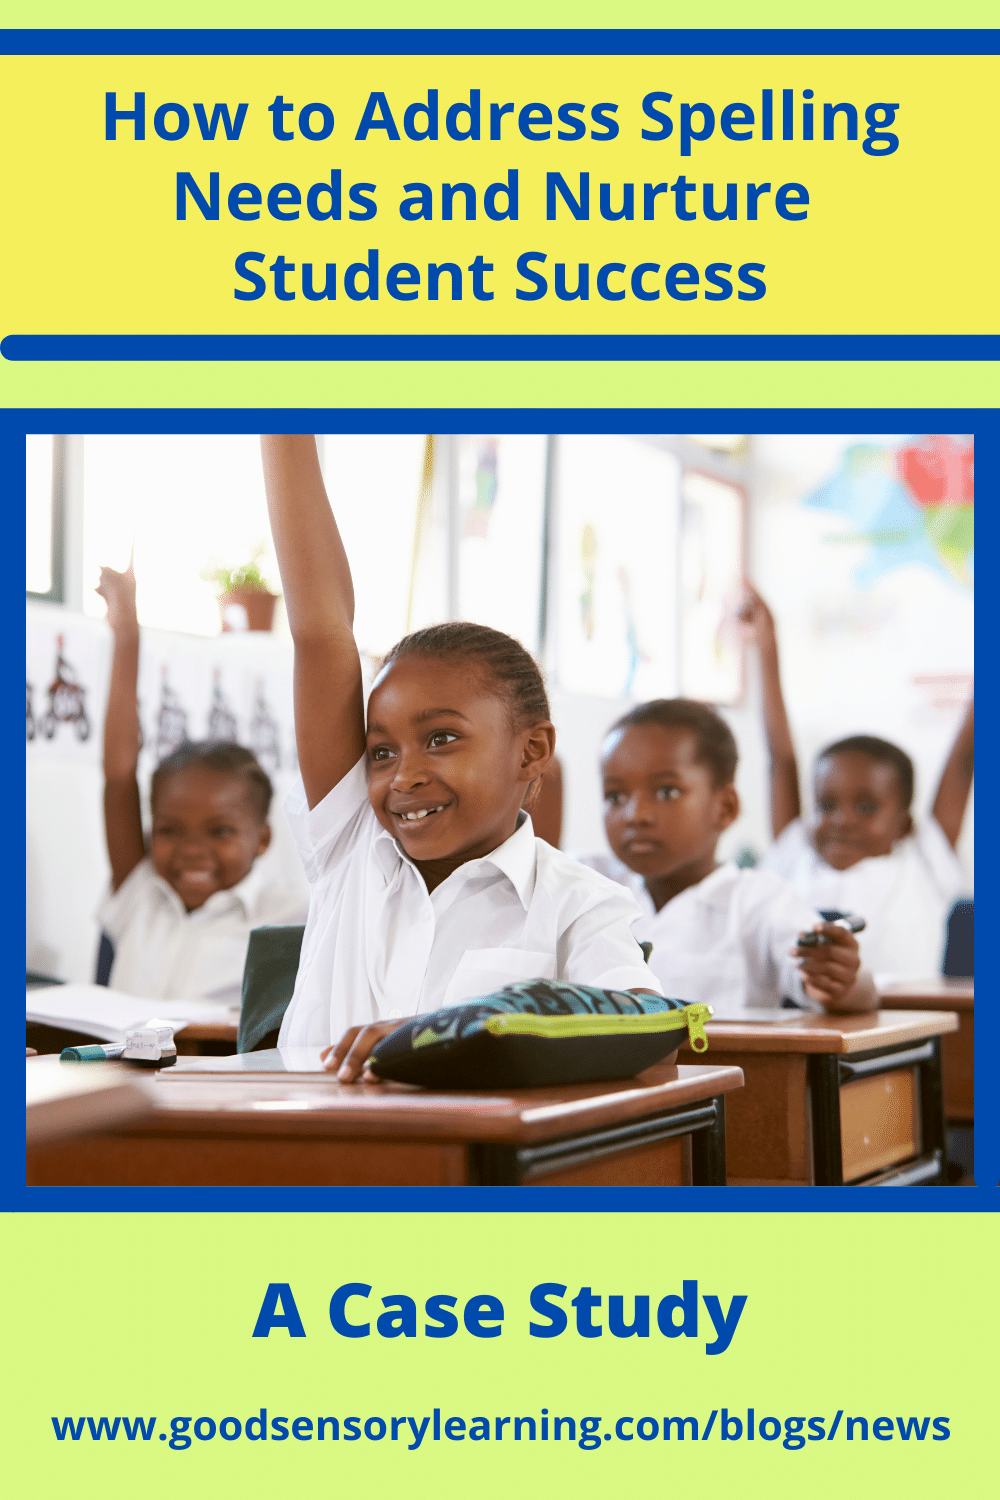 Spelling Strategies for Student Success